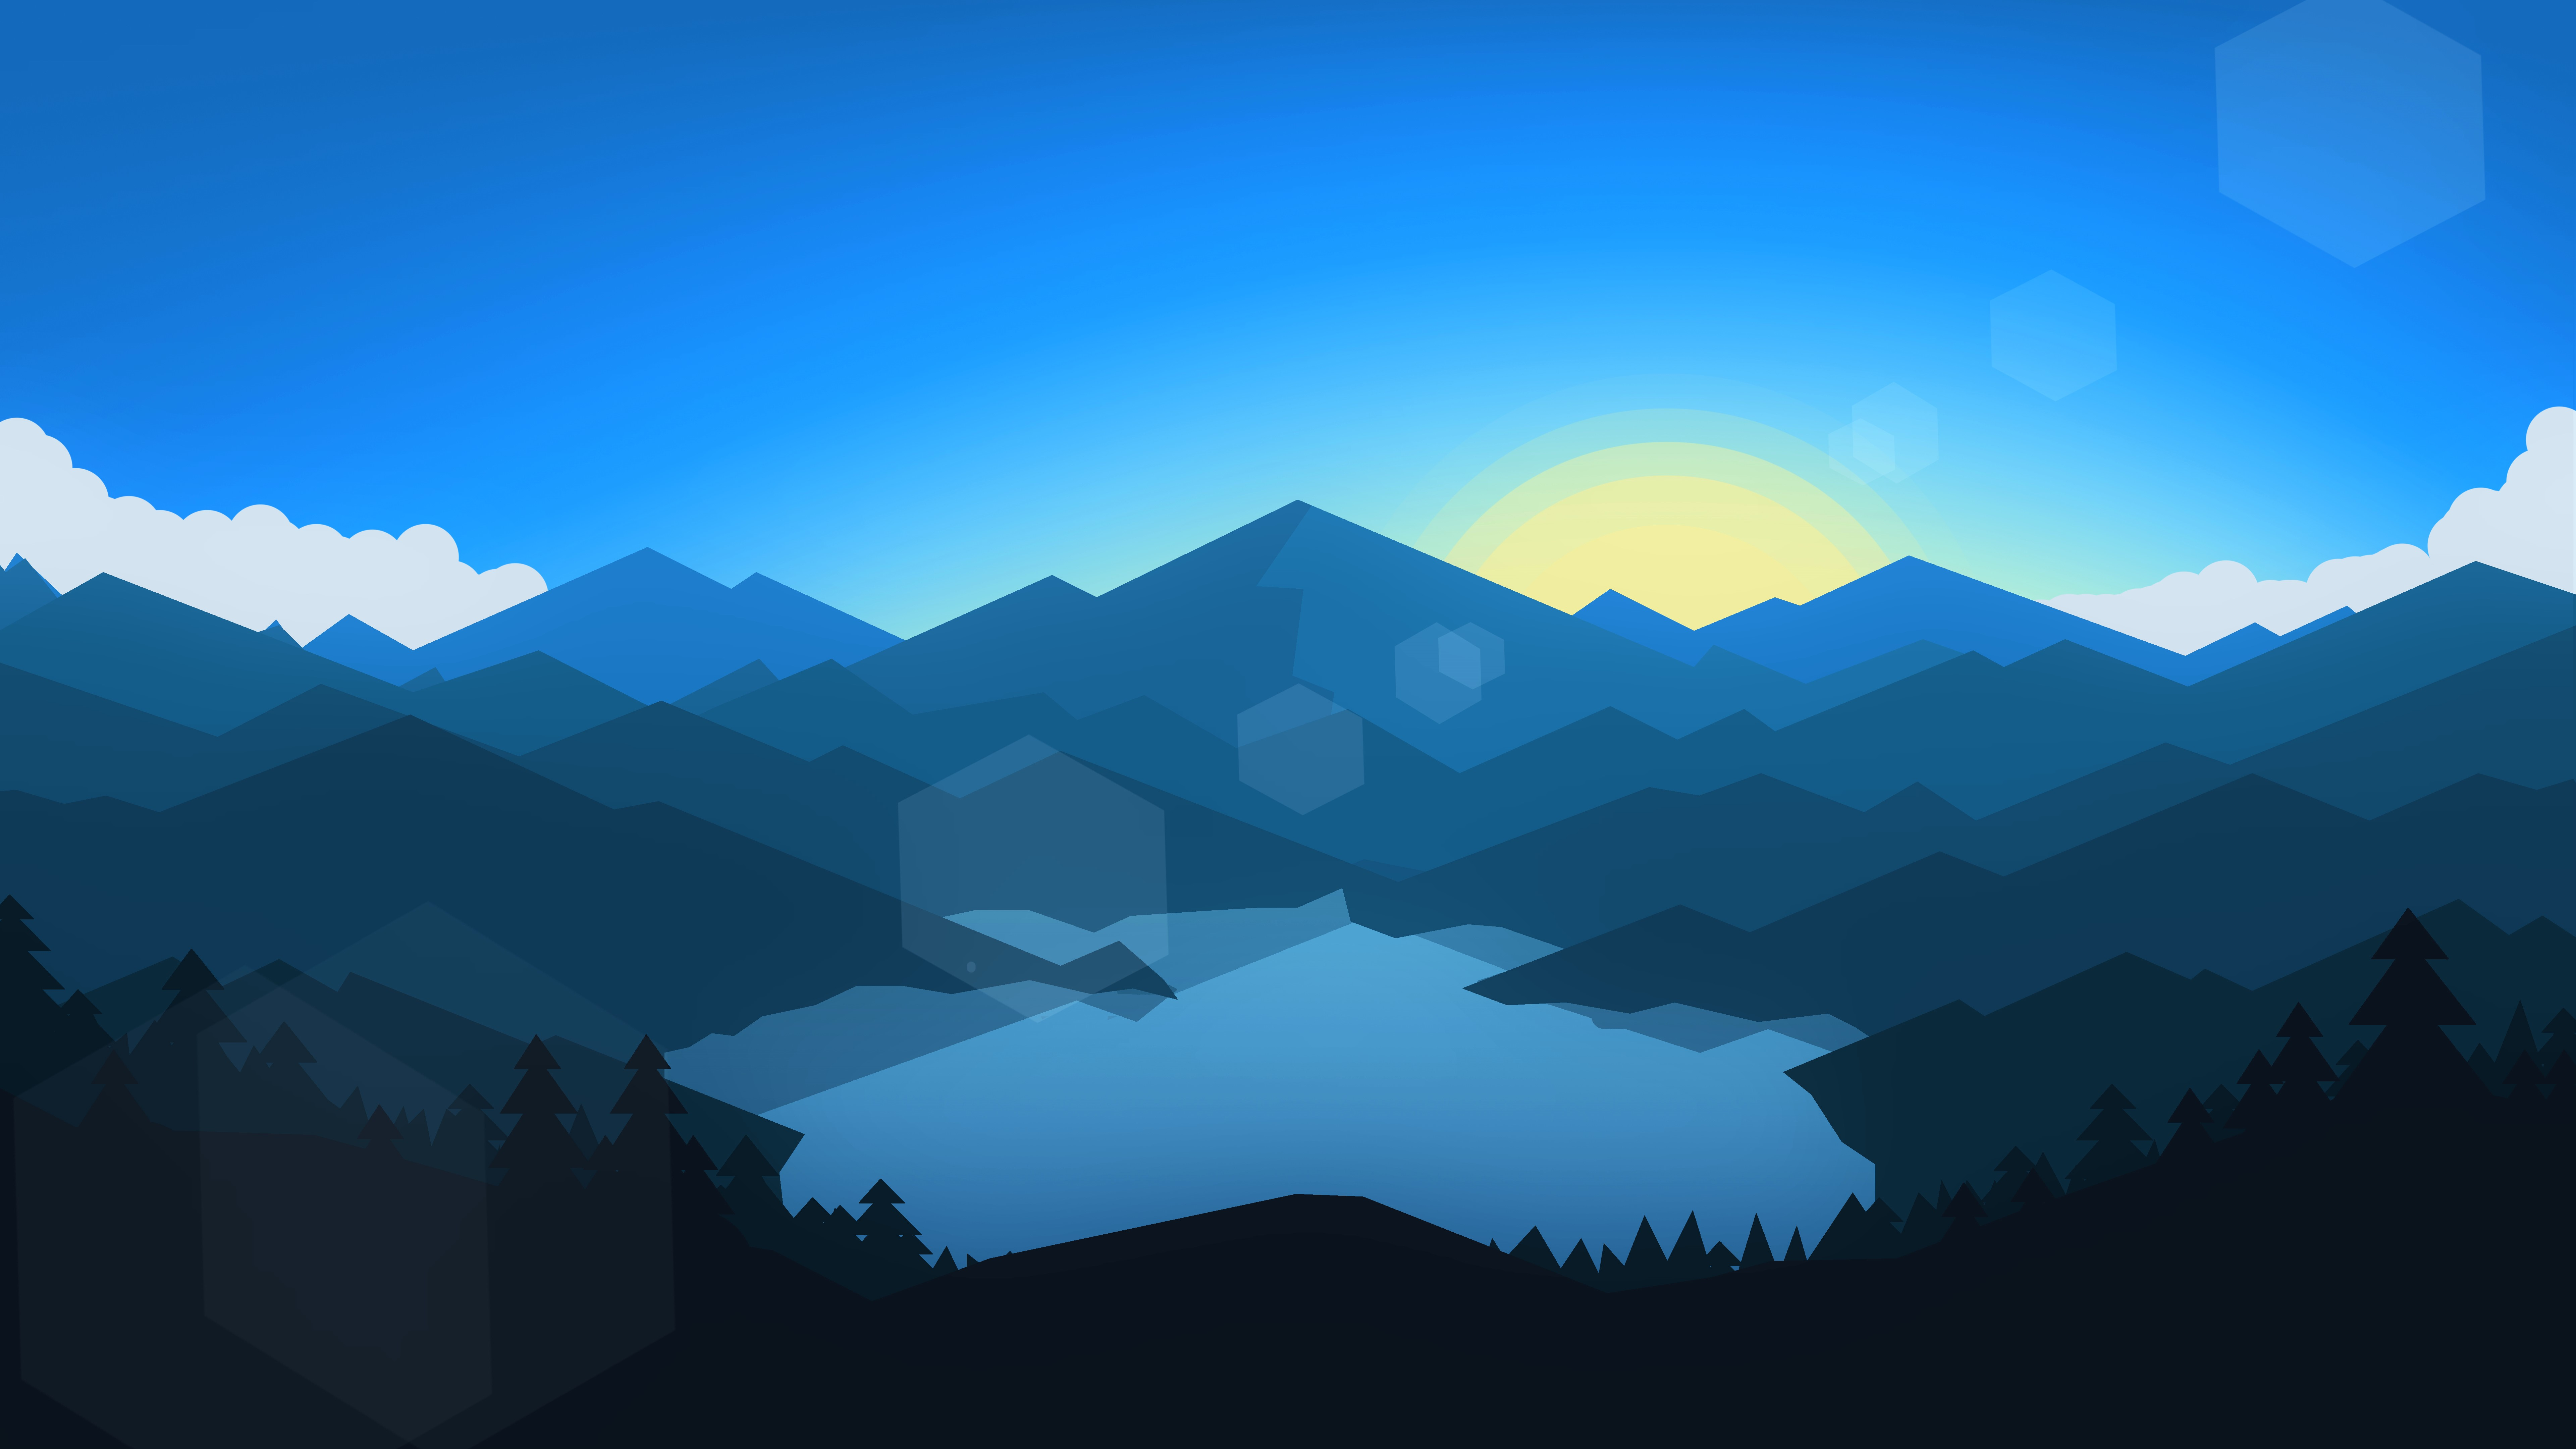 1366x768 forest mountains sunset cool weather minimalism 1366x768